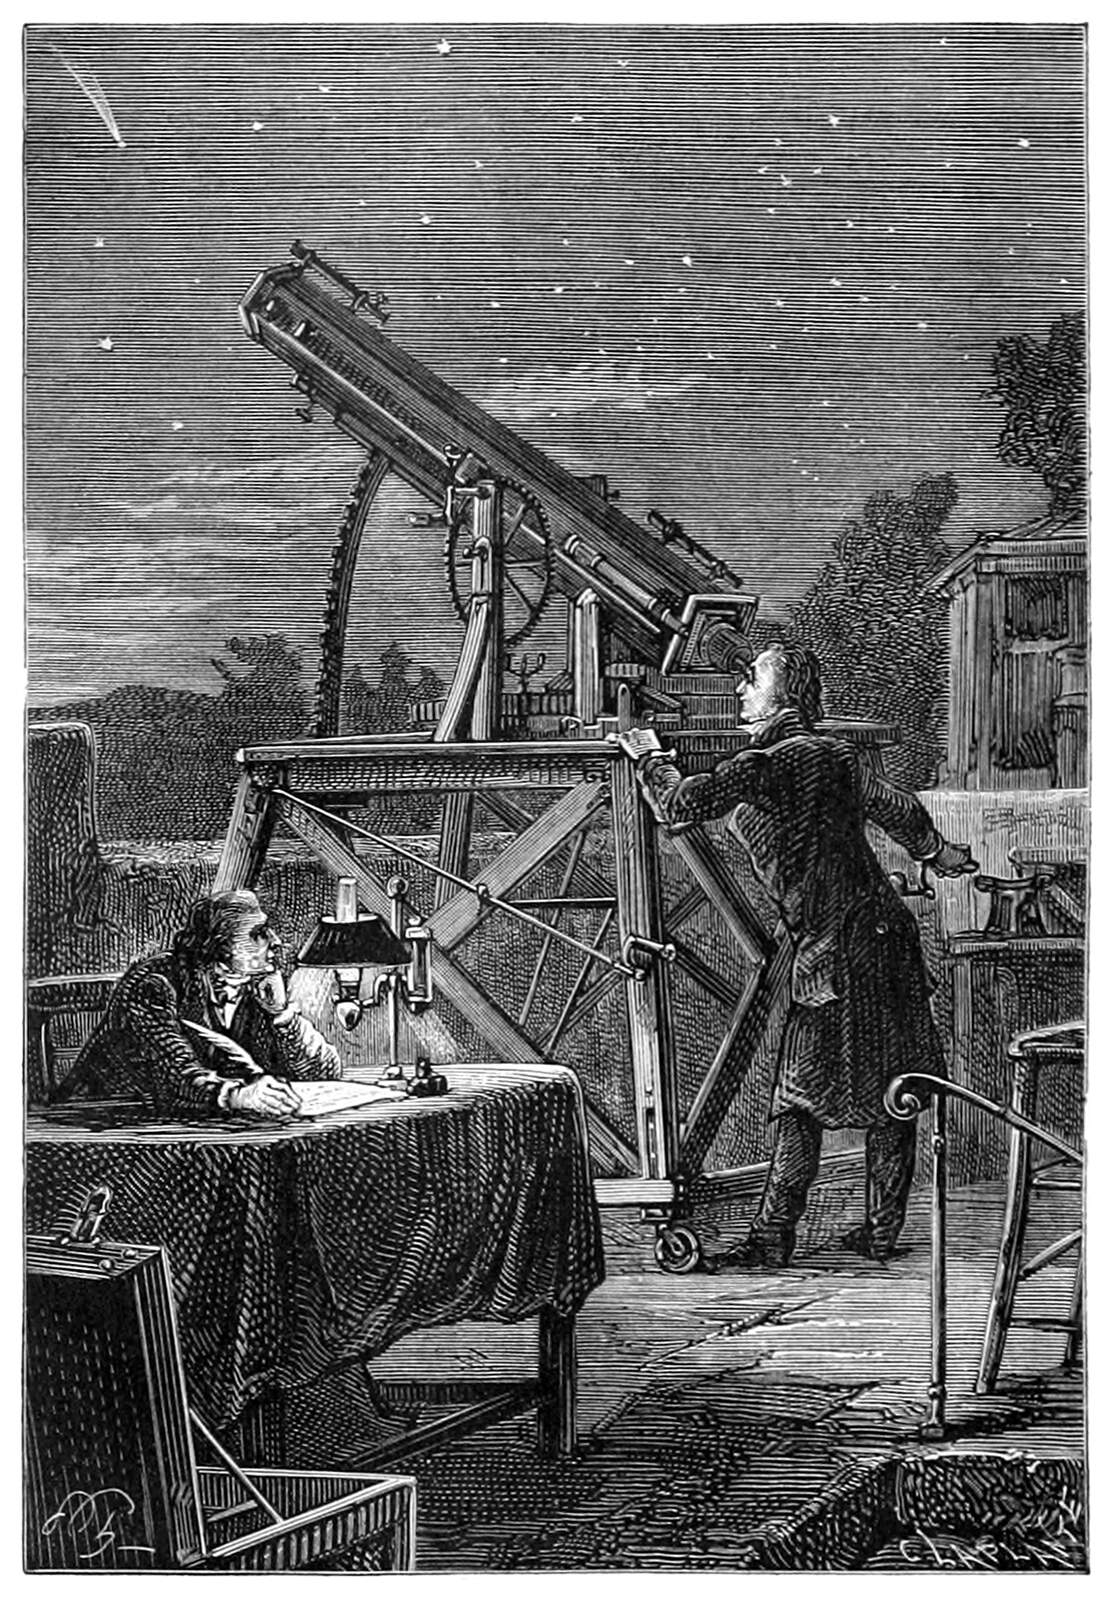 An astronomer looks up at the stars